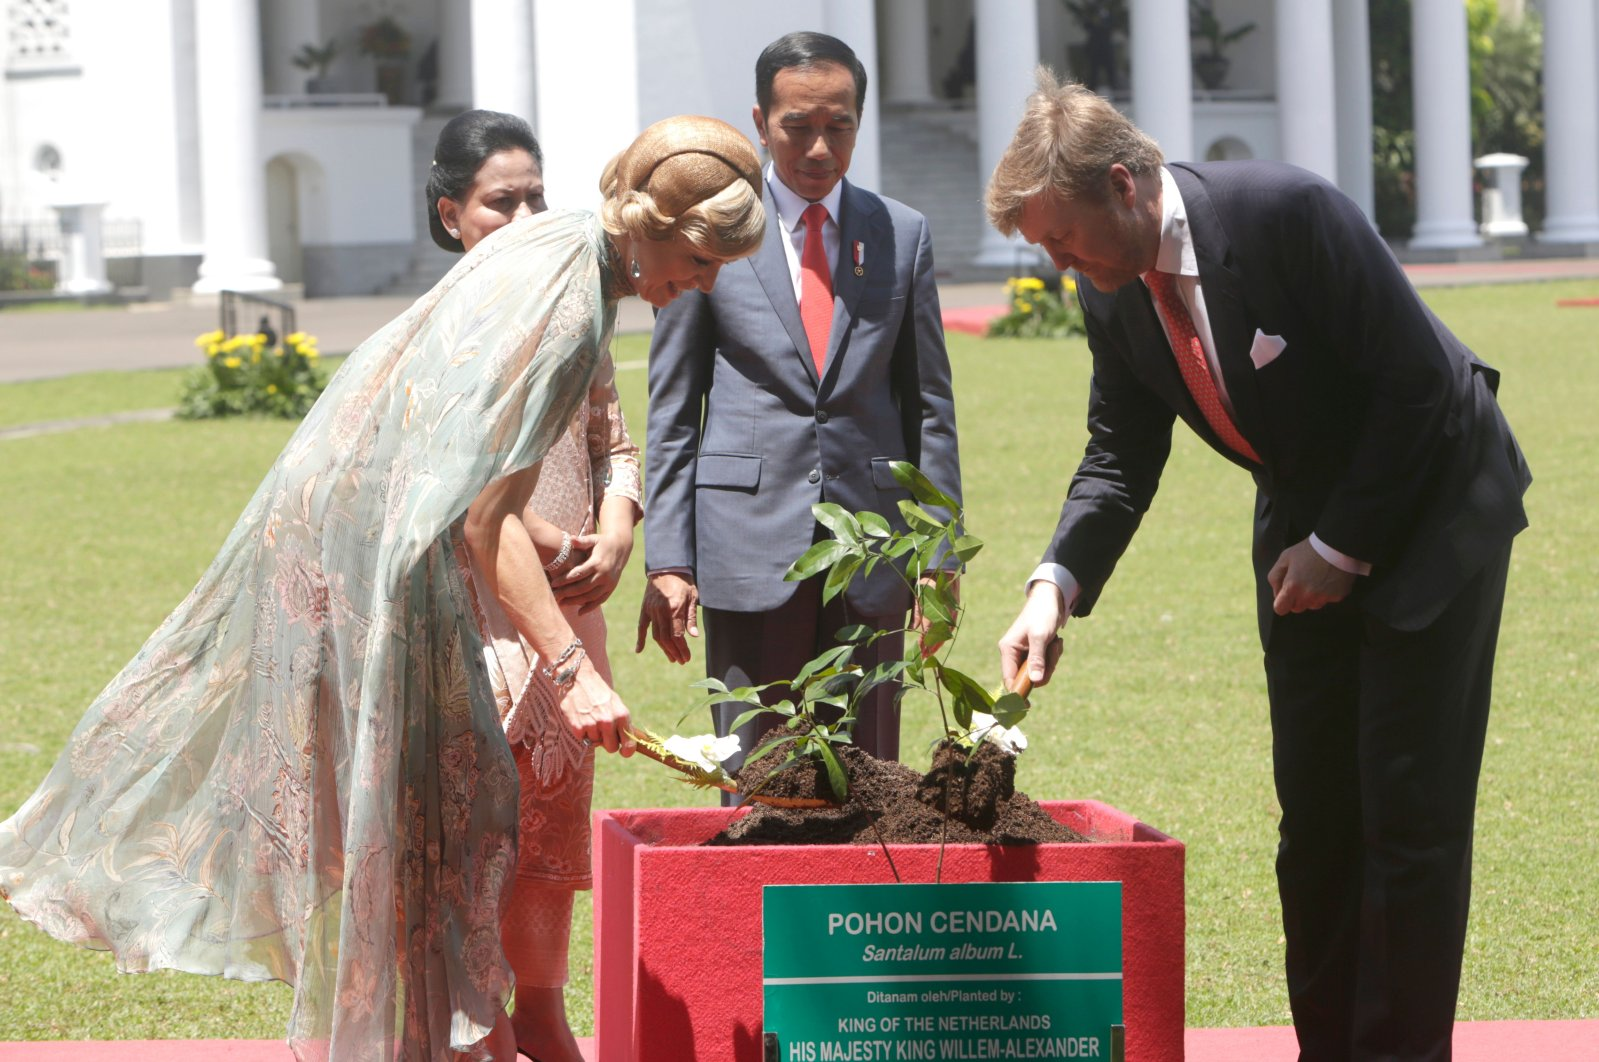 Dutch King Willem-Alexander (R) and Queen Maxima (L) accompanied by Indonesian President Joko Widodo (2nd R) and wife Iriana Joko Widodo (2nd L) plant a tree during their visit to the Presidential Palace in Bogor on March 10, 2020. (AFP Photo)